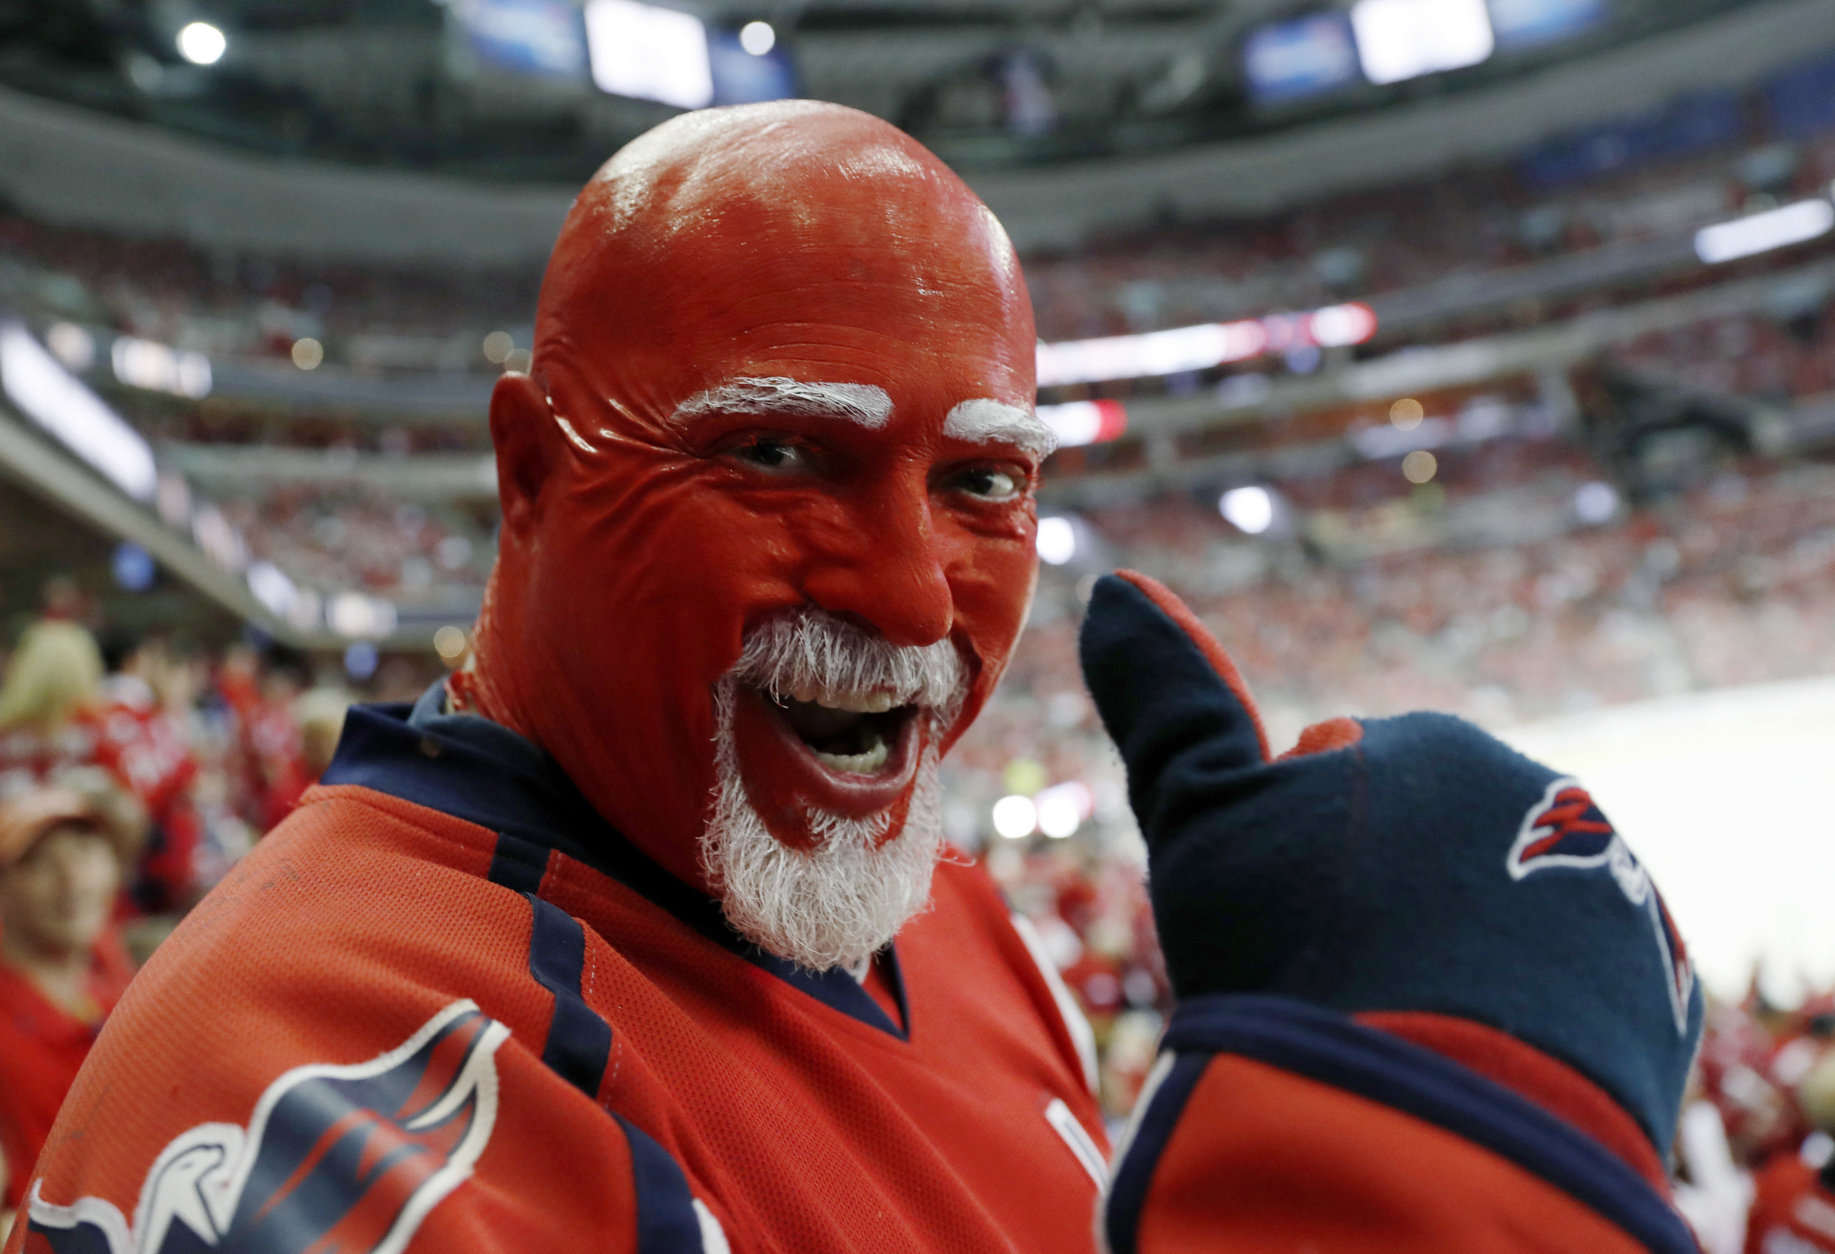 A Washington Capitals fan wears team colors during the first period in Game 4 of the NHL hockey Stanley Cup Final between the Capitals and the Vegas Golden Knights, Monday, June 4, 2018, in Washington. (AP Photo/Pablo Martinez Monsivais)